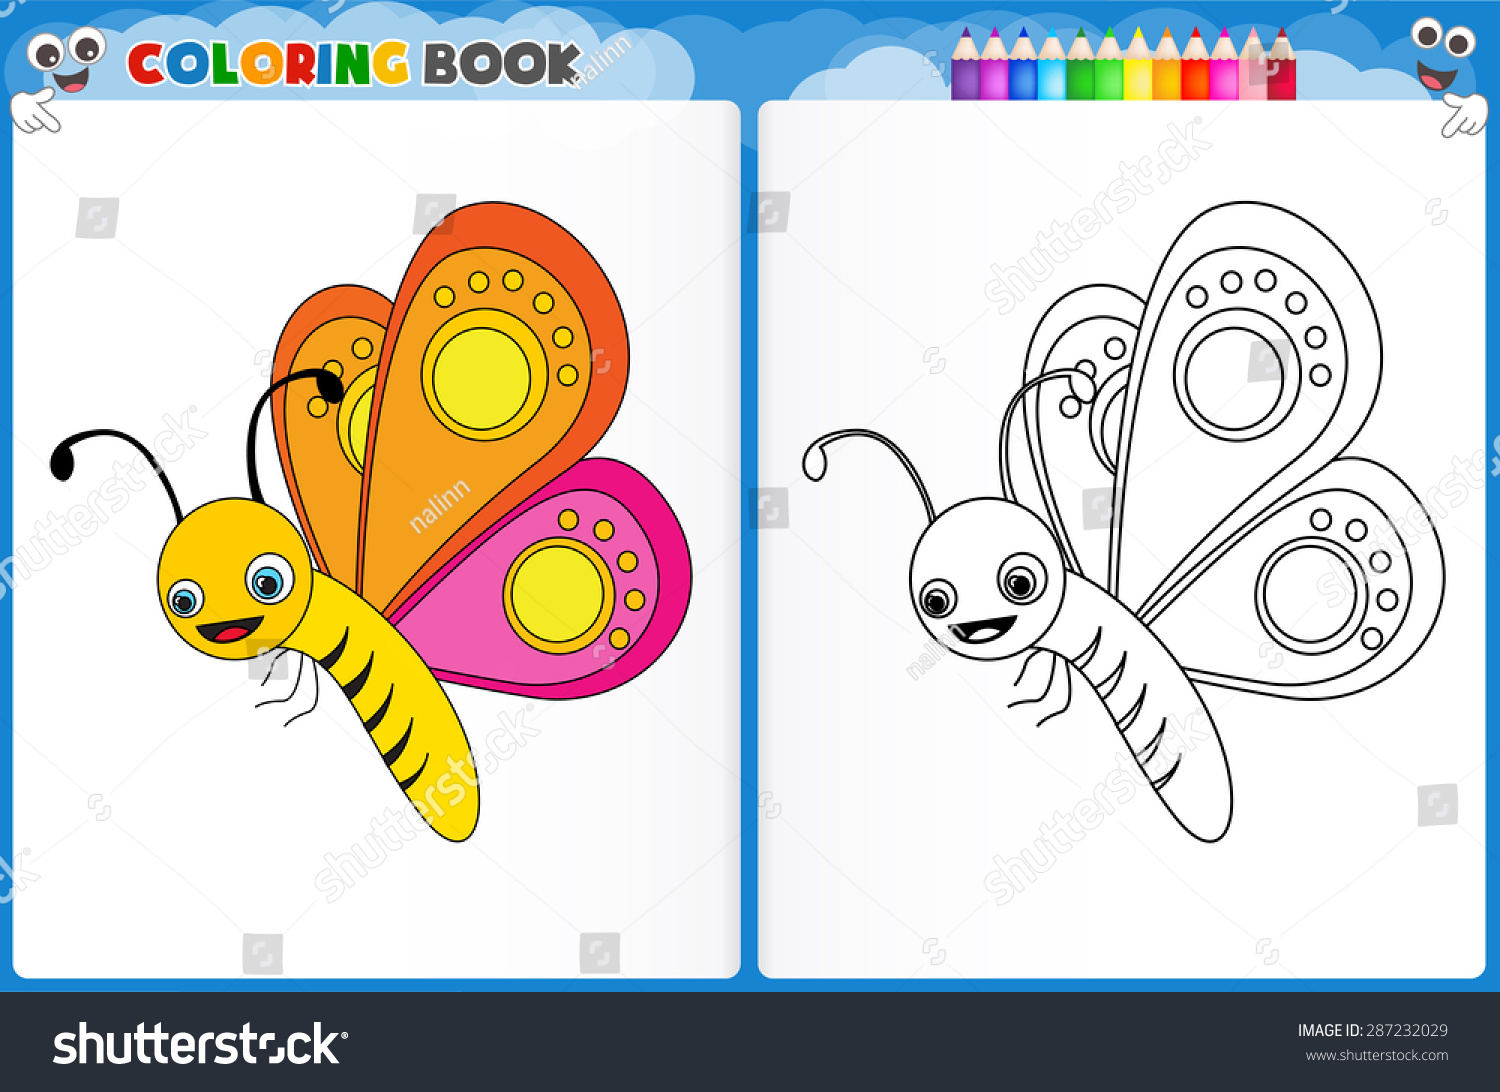 Coloring page butterfly with colorful sample printable worksheet for preschool kindergarten kids to improve basic coloring skills